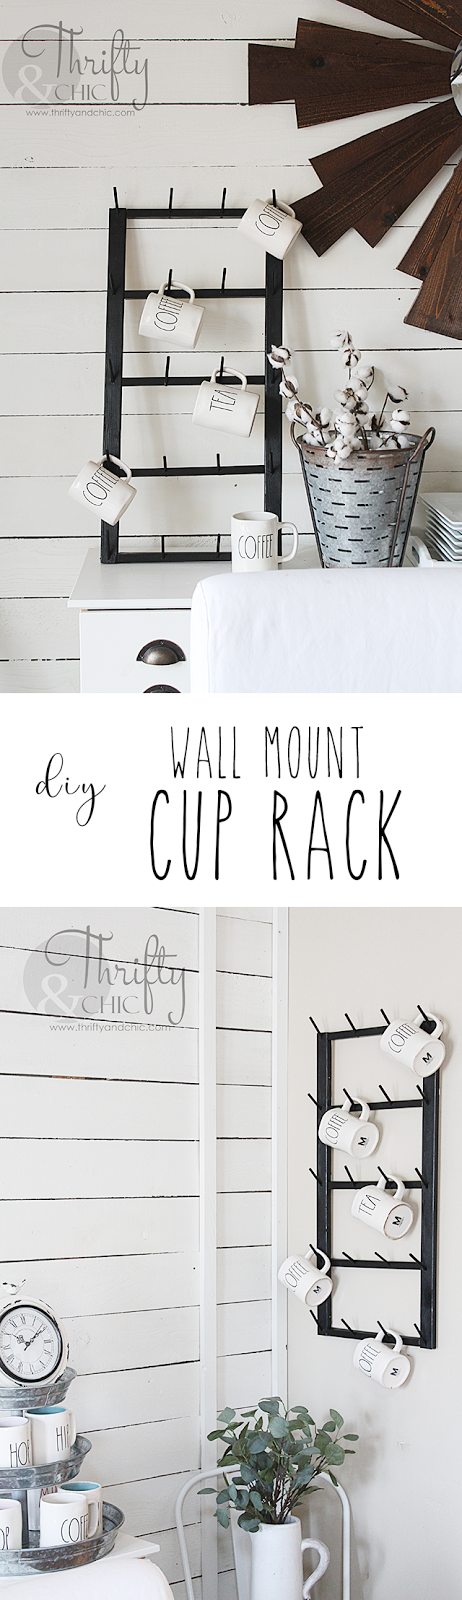 DIY coffee cup display rack. Easy to wall mount! Great way to display Rae Dunn pieces. DIY farmhouse decor